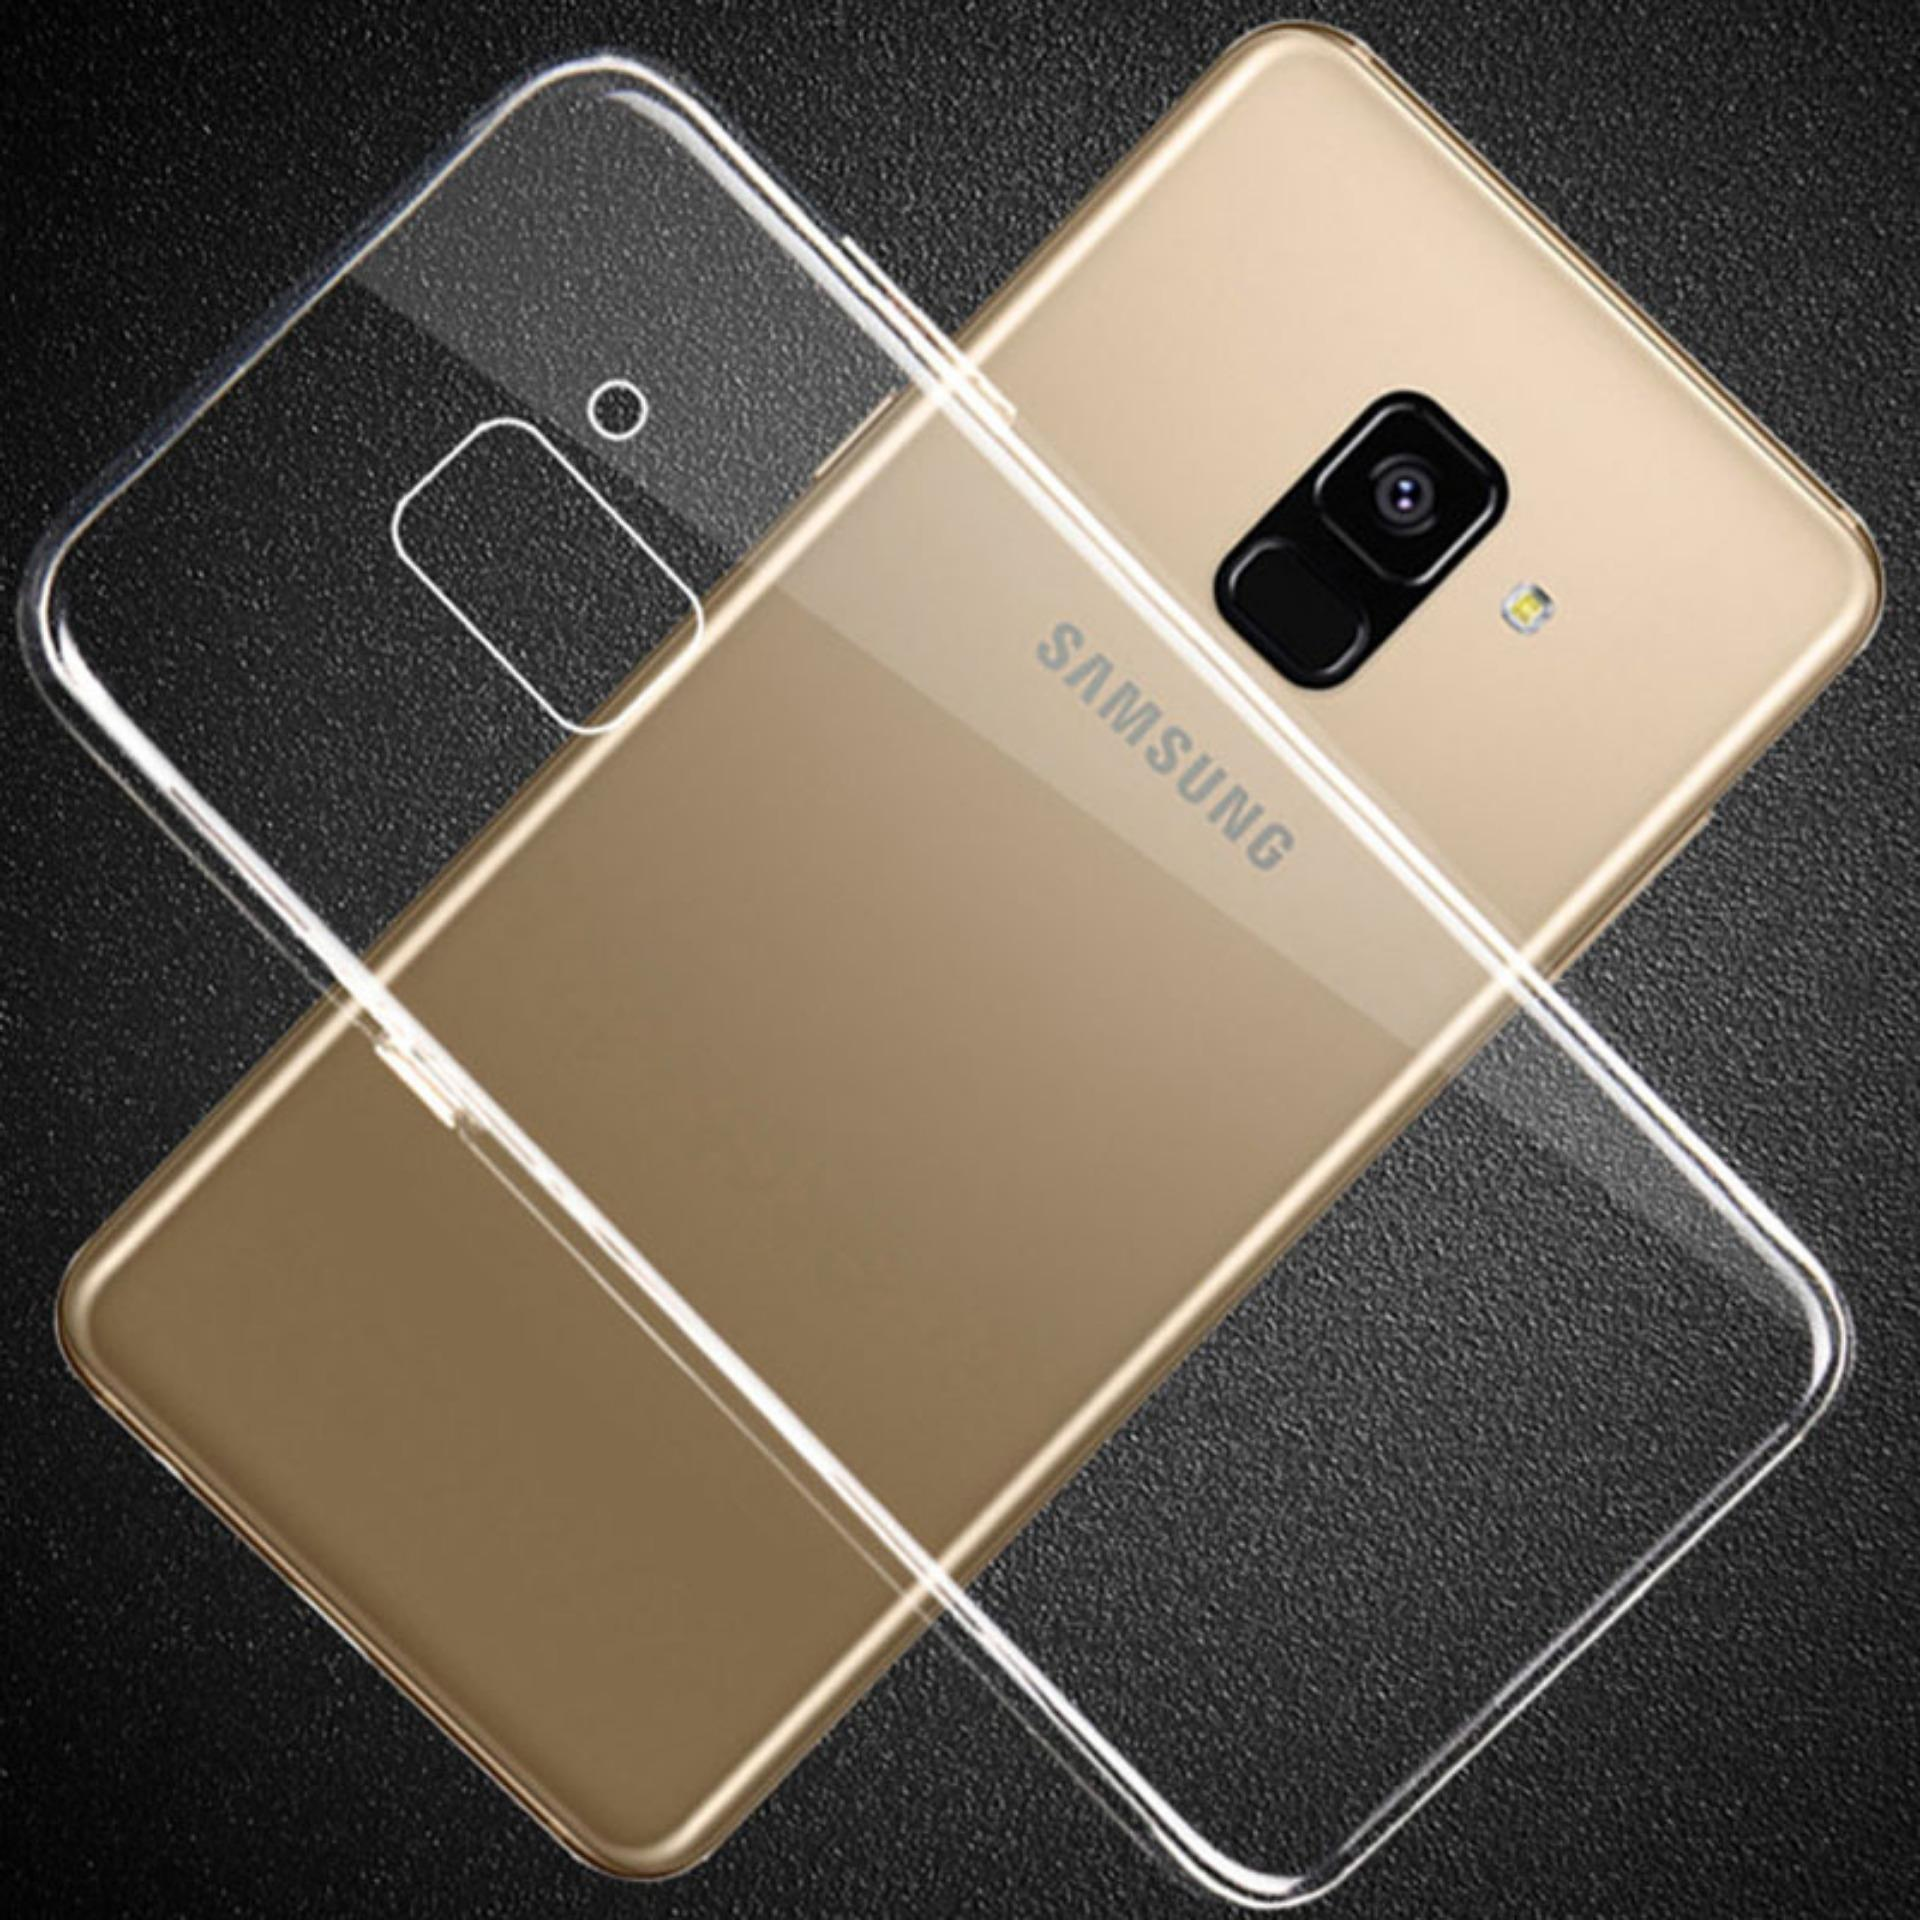 LOLLYPOP Ultrathin TPU Samsung Galaxy A6 2018 Clear/Transparant Bening Softcase Silicone Backcase Backcover Case Hp Casing Handphone